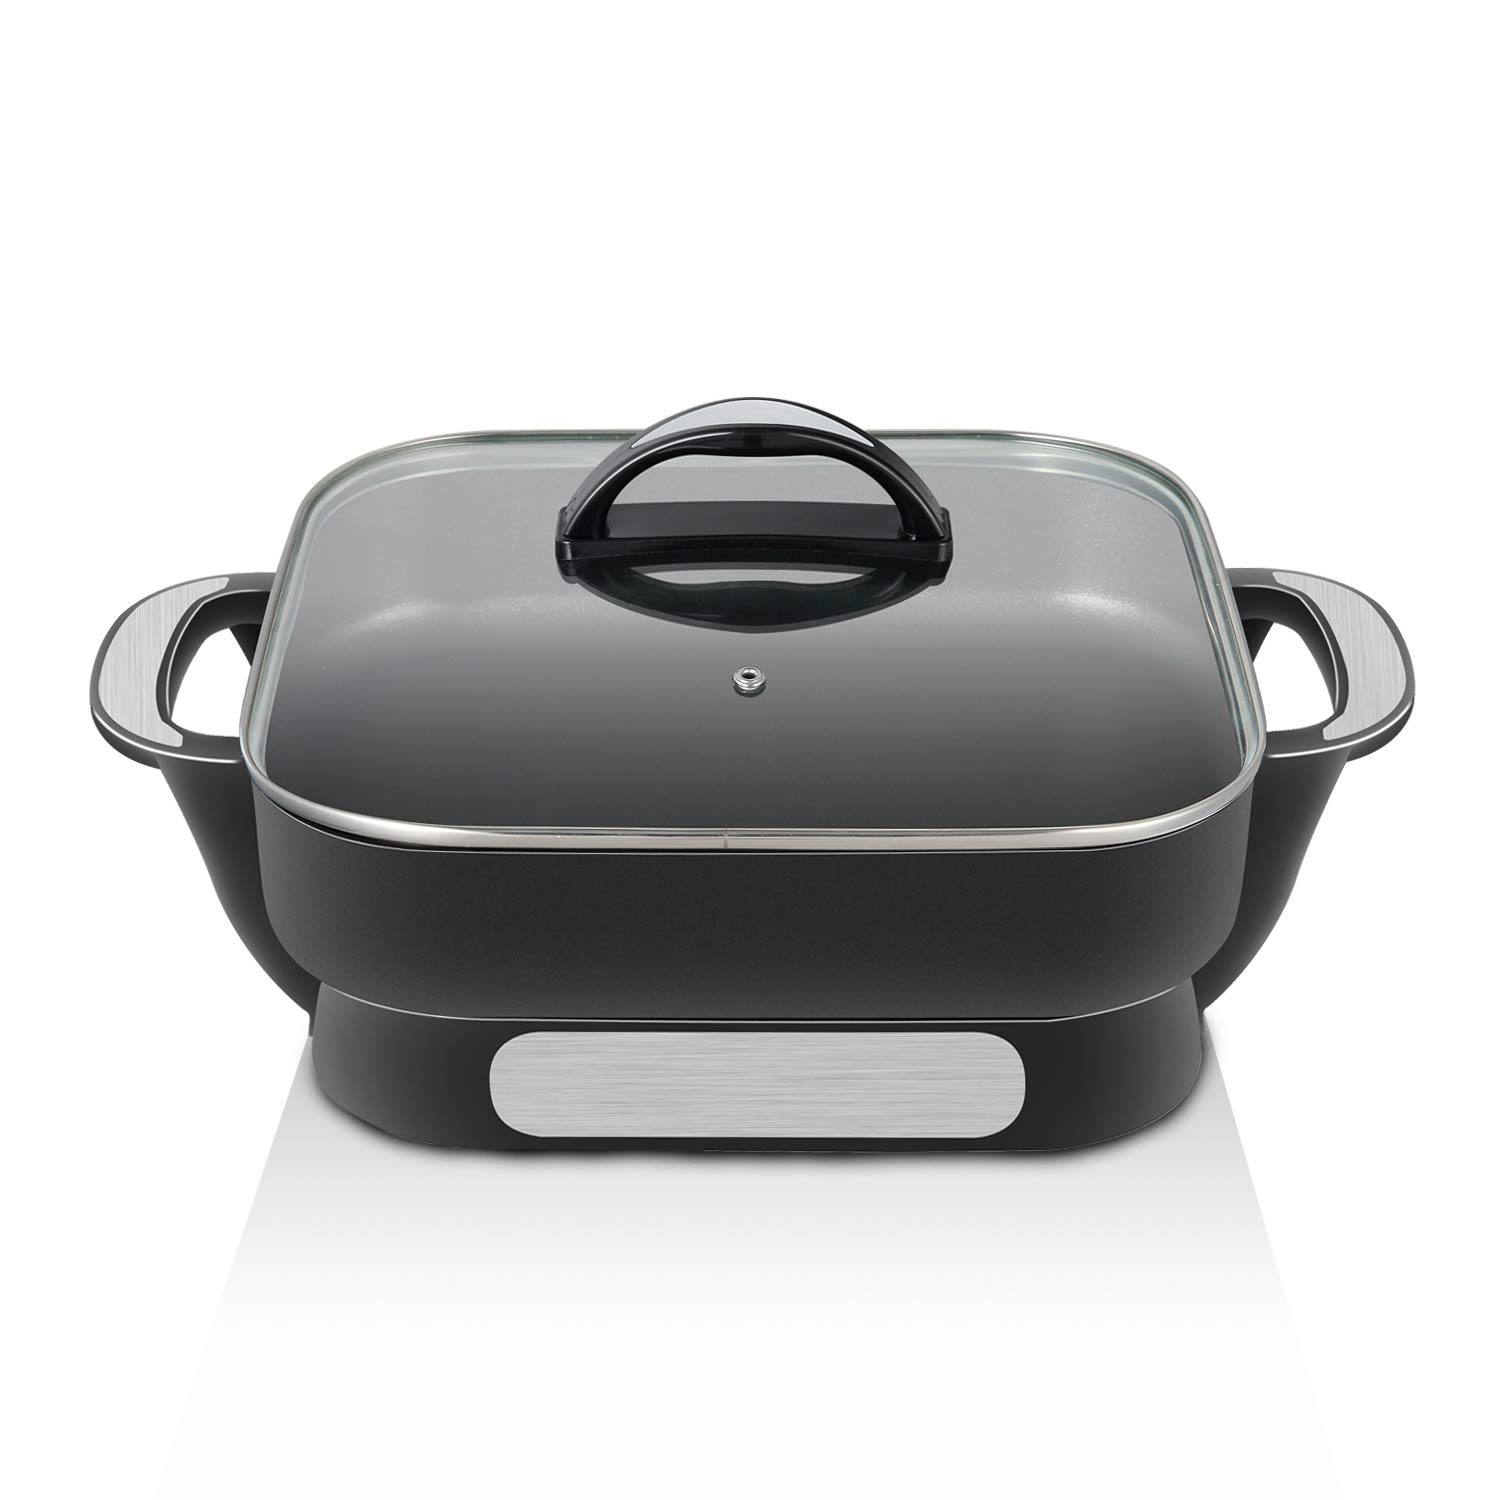 efluky 12 inch Electric Skillet, Non-stick Electric Skillet with Glass Lid Great for Cooking Anything from Breakfast to Dinner, 13 x 13 x 5 inch, Black, GD-12